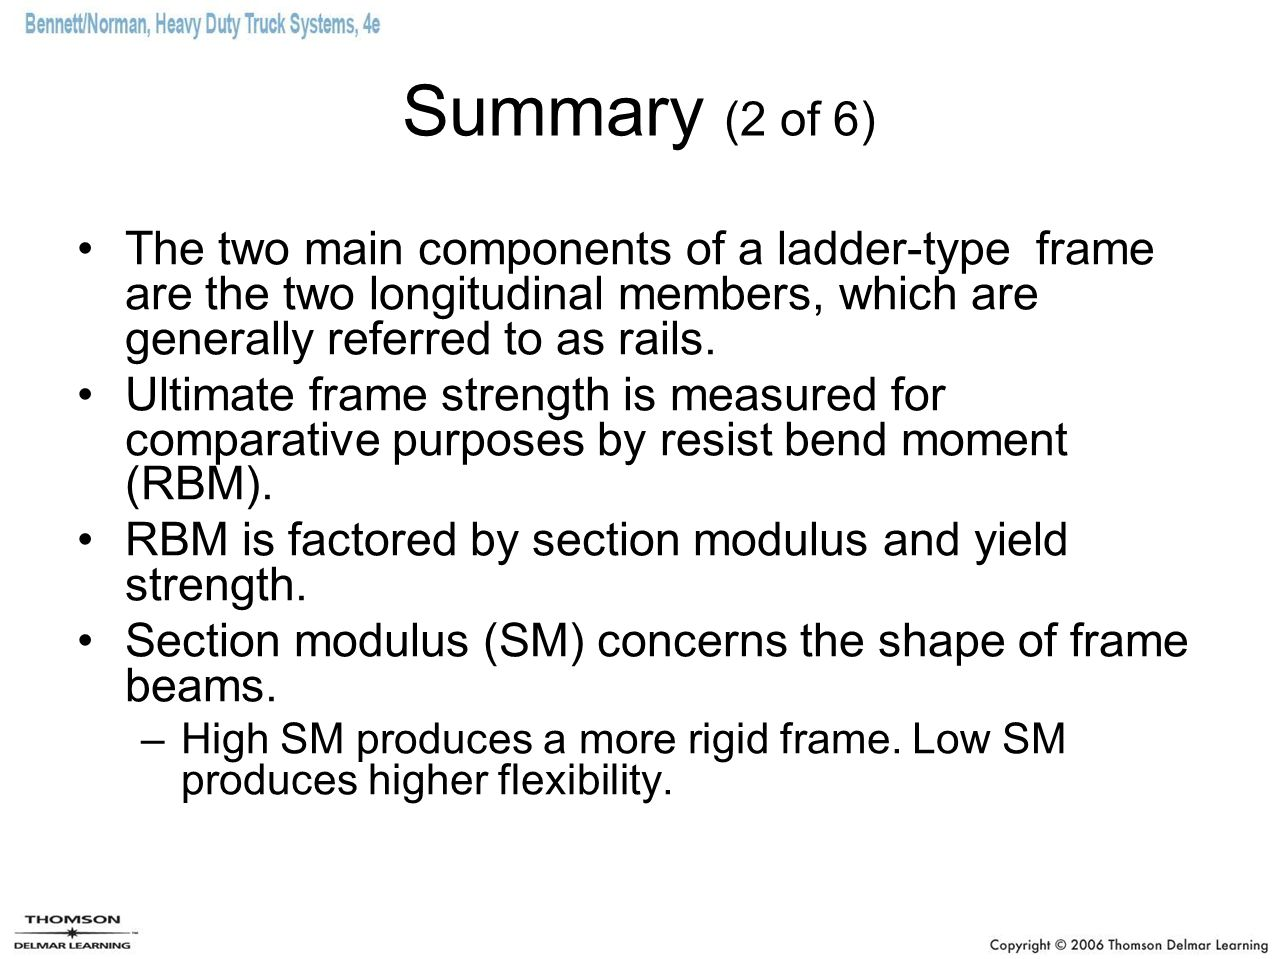 Summary (2 of 6) The two main components of a ladder-type frame are the two longitudinal members, which are generally referred to as rails.